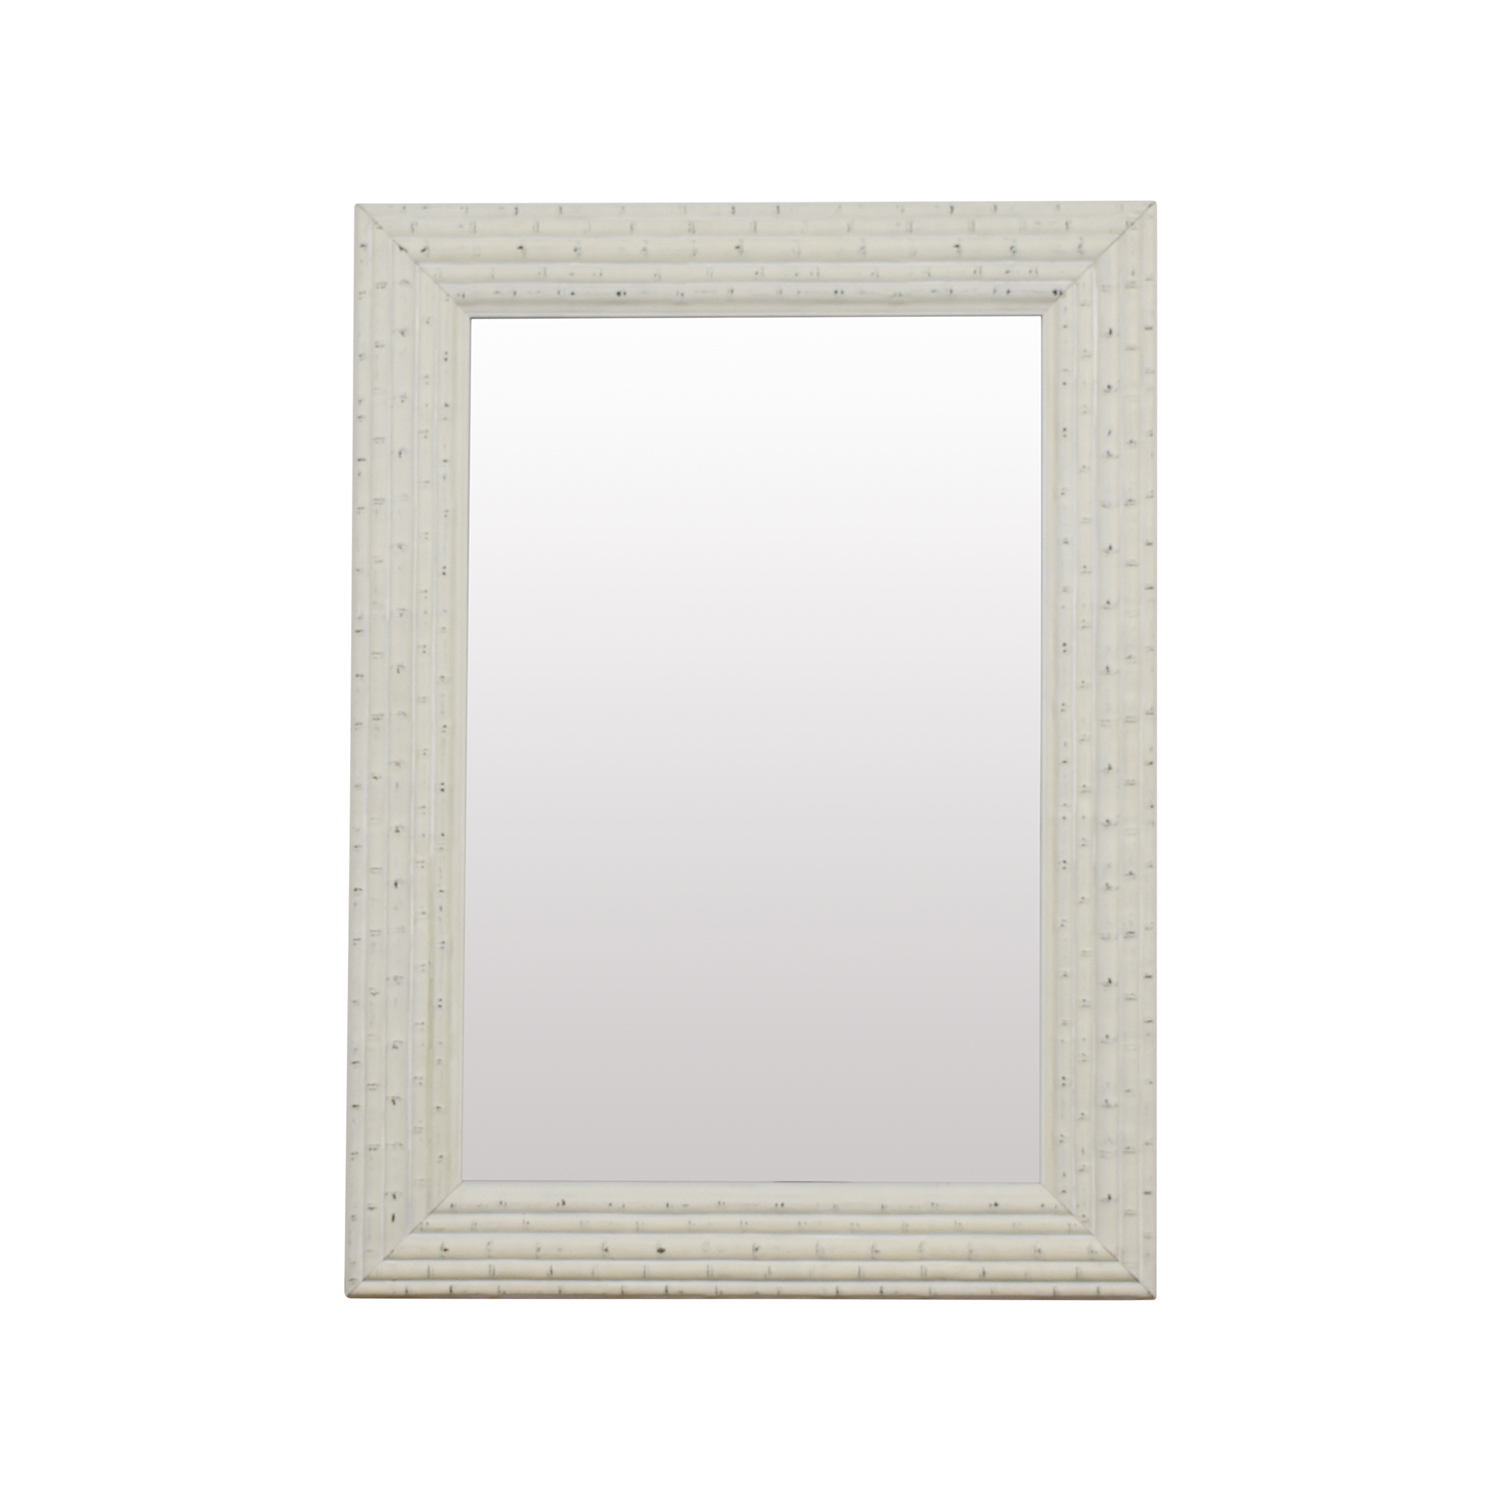 HomeGoods HomeGoods Large White Bamboo Mirror discount